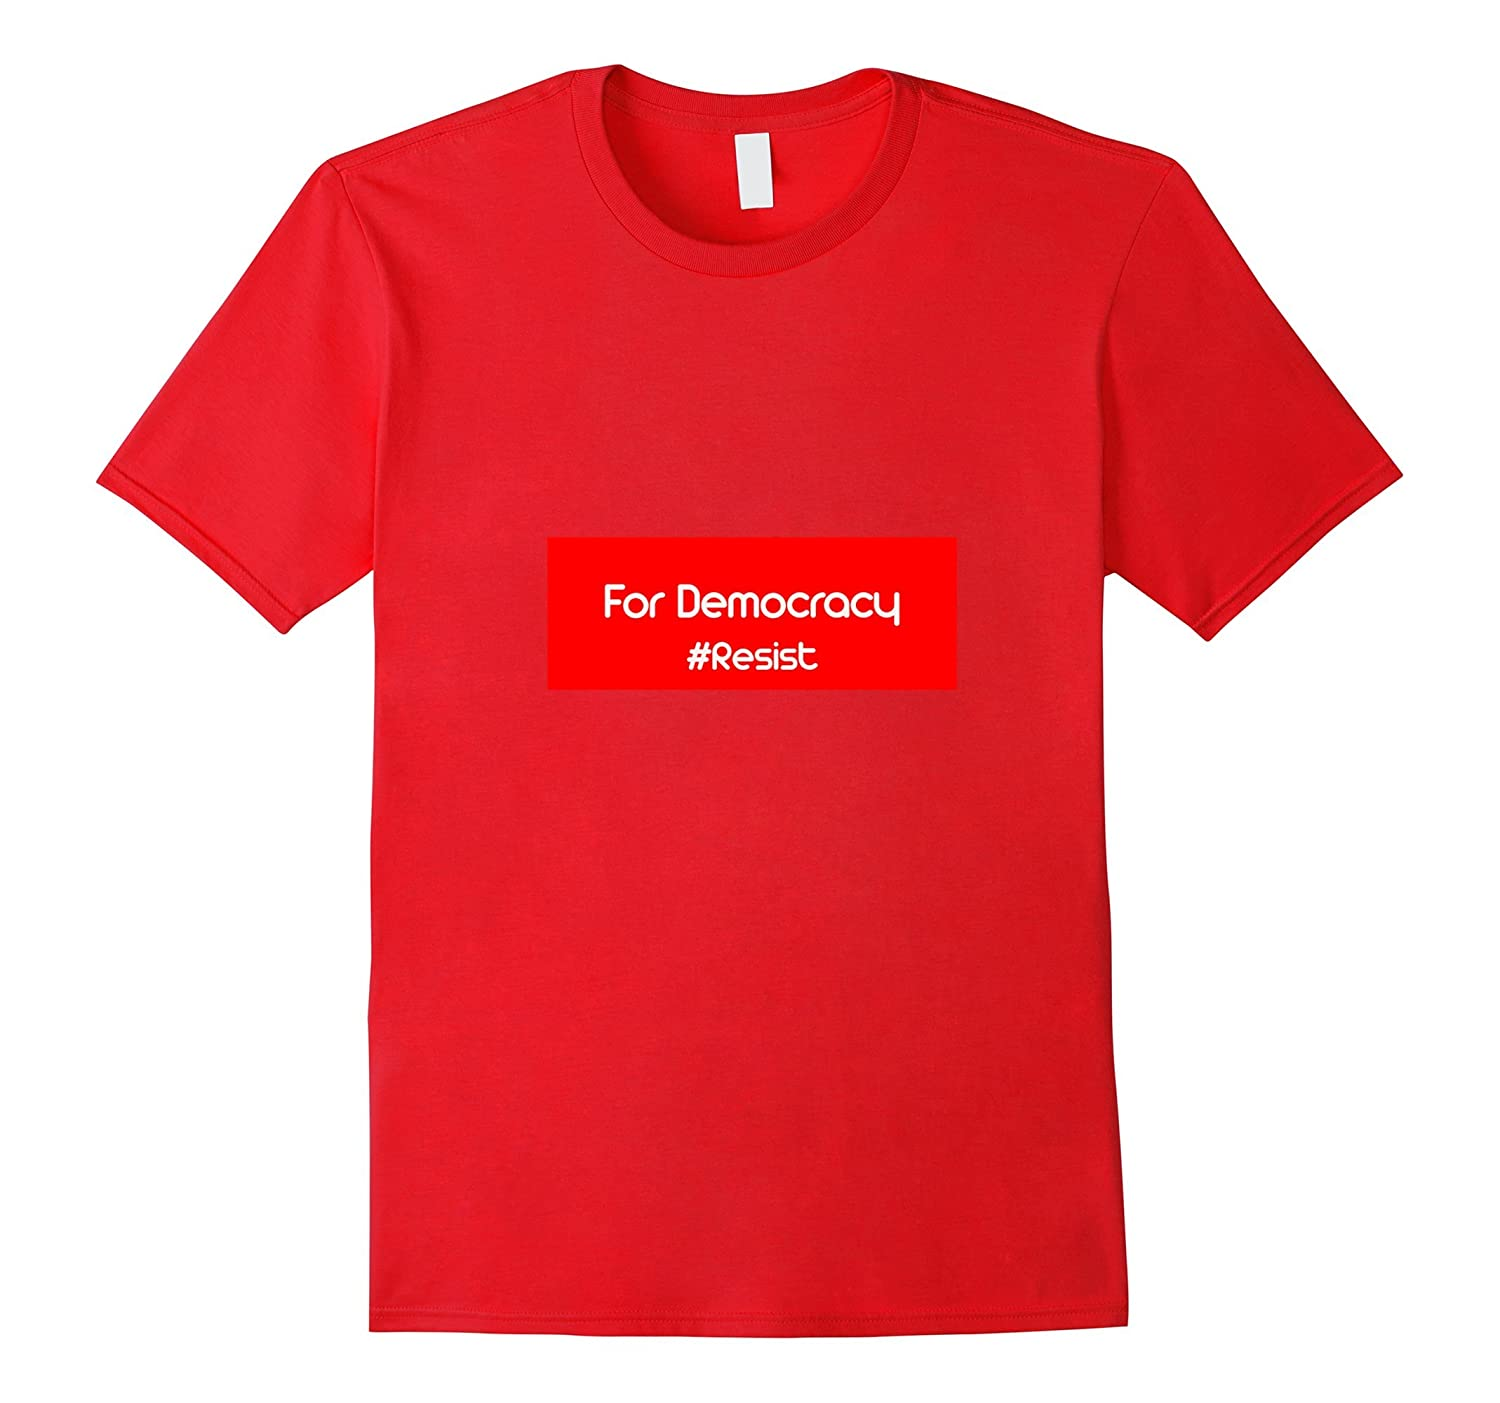 Resist T-Shirt For Democracy Resist T-Shirt-TD